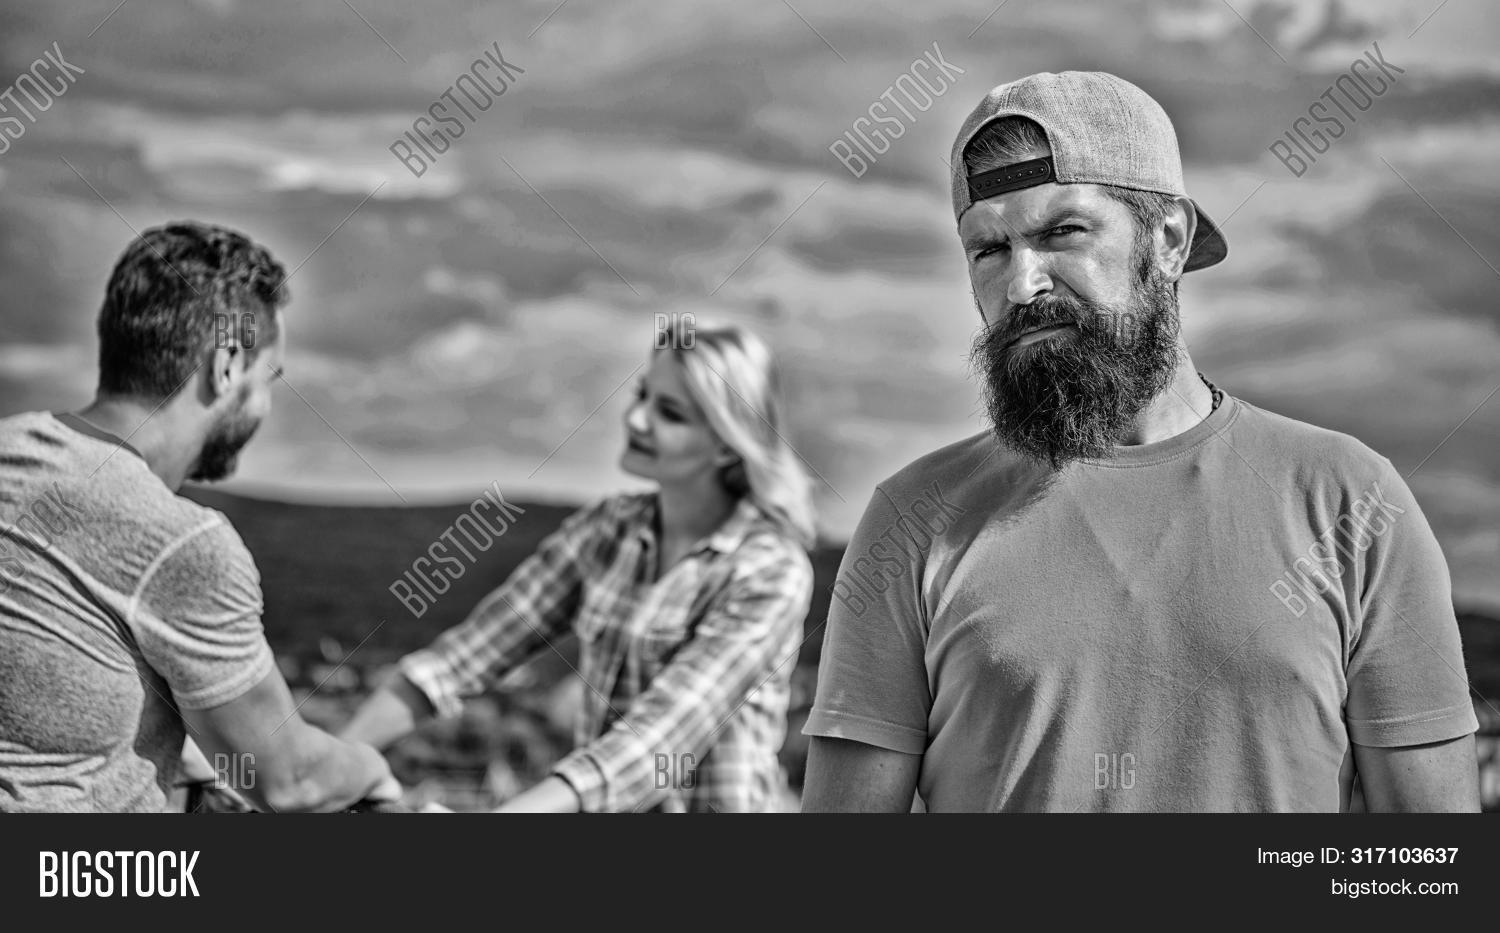 Guy Adult Still Lonely Image & Photo (Free Trial) | Bigstock